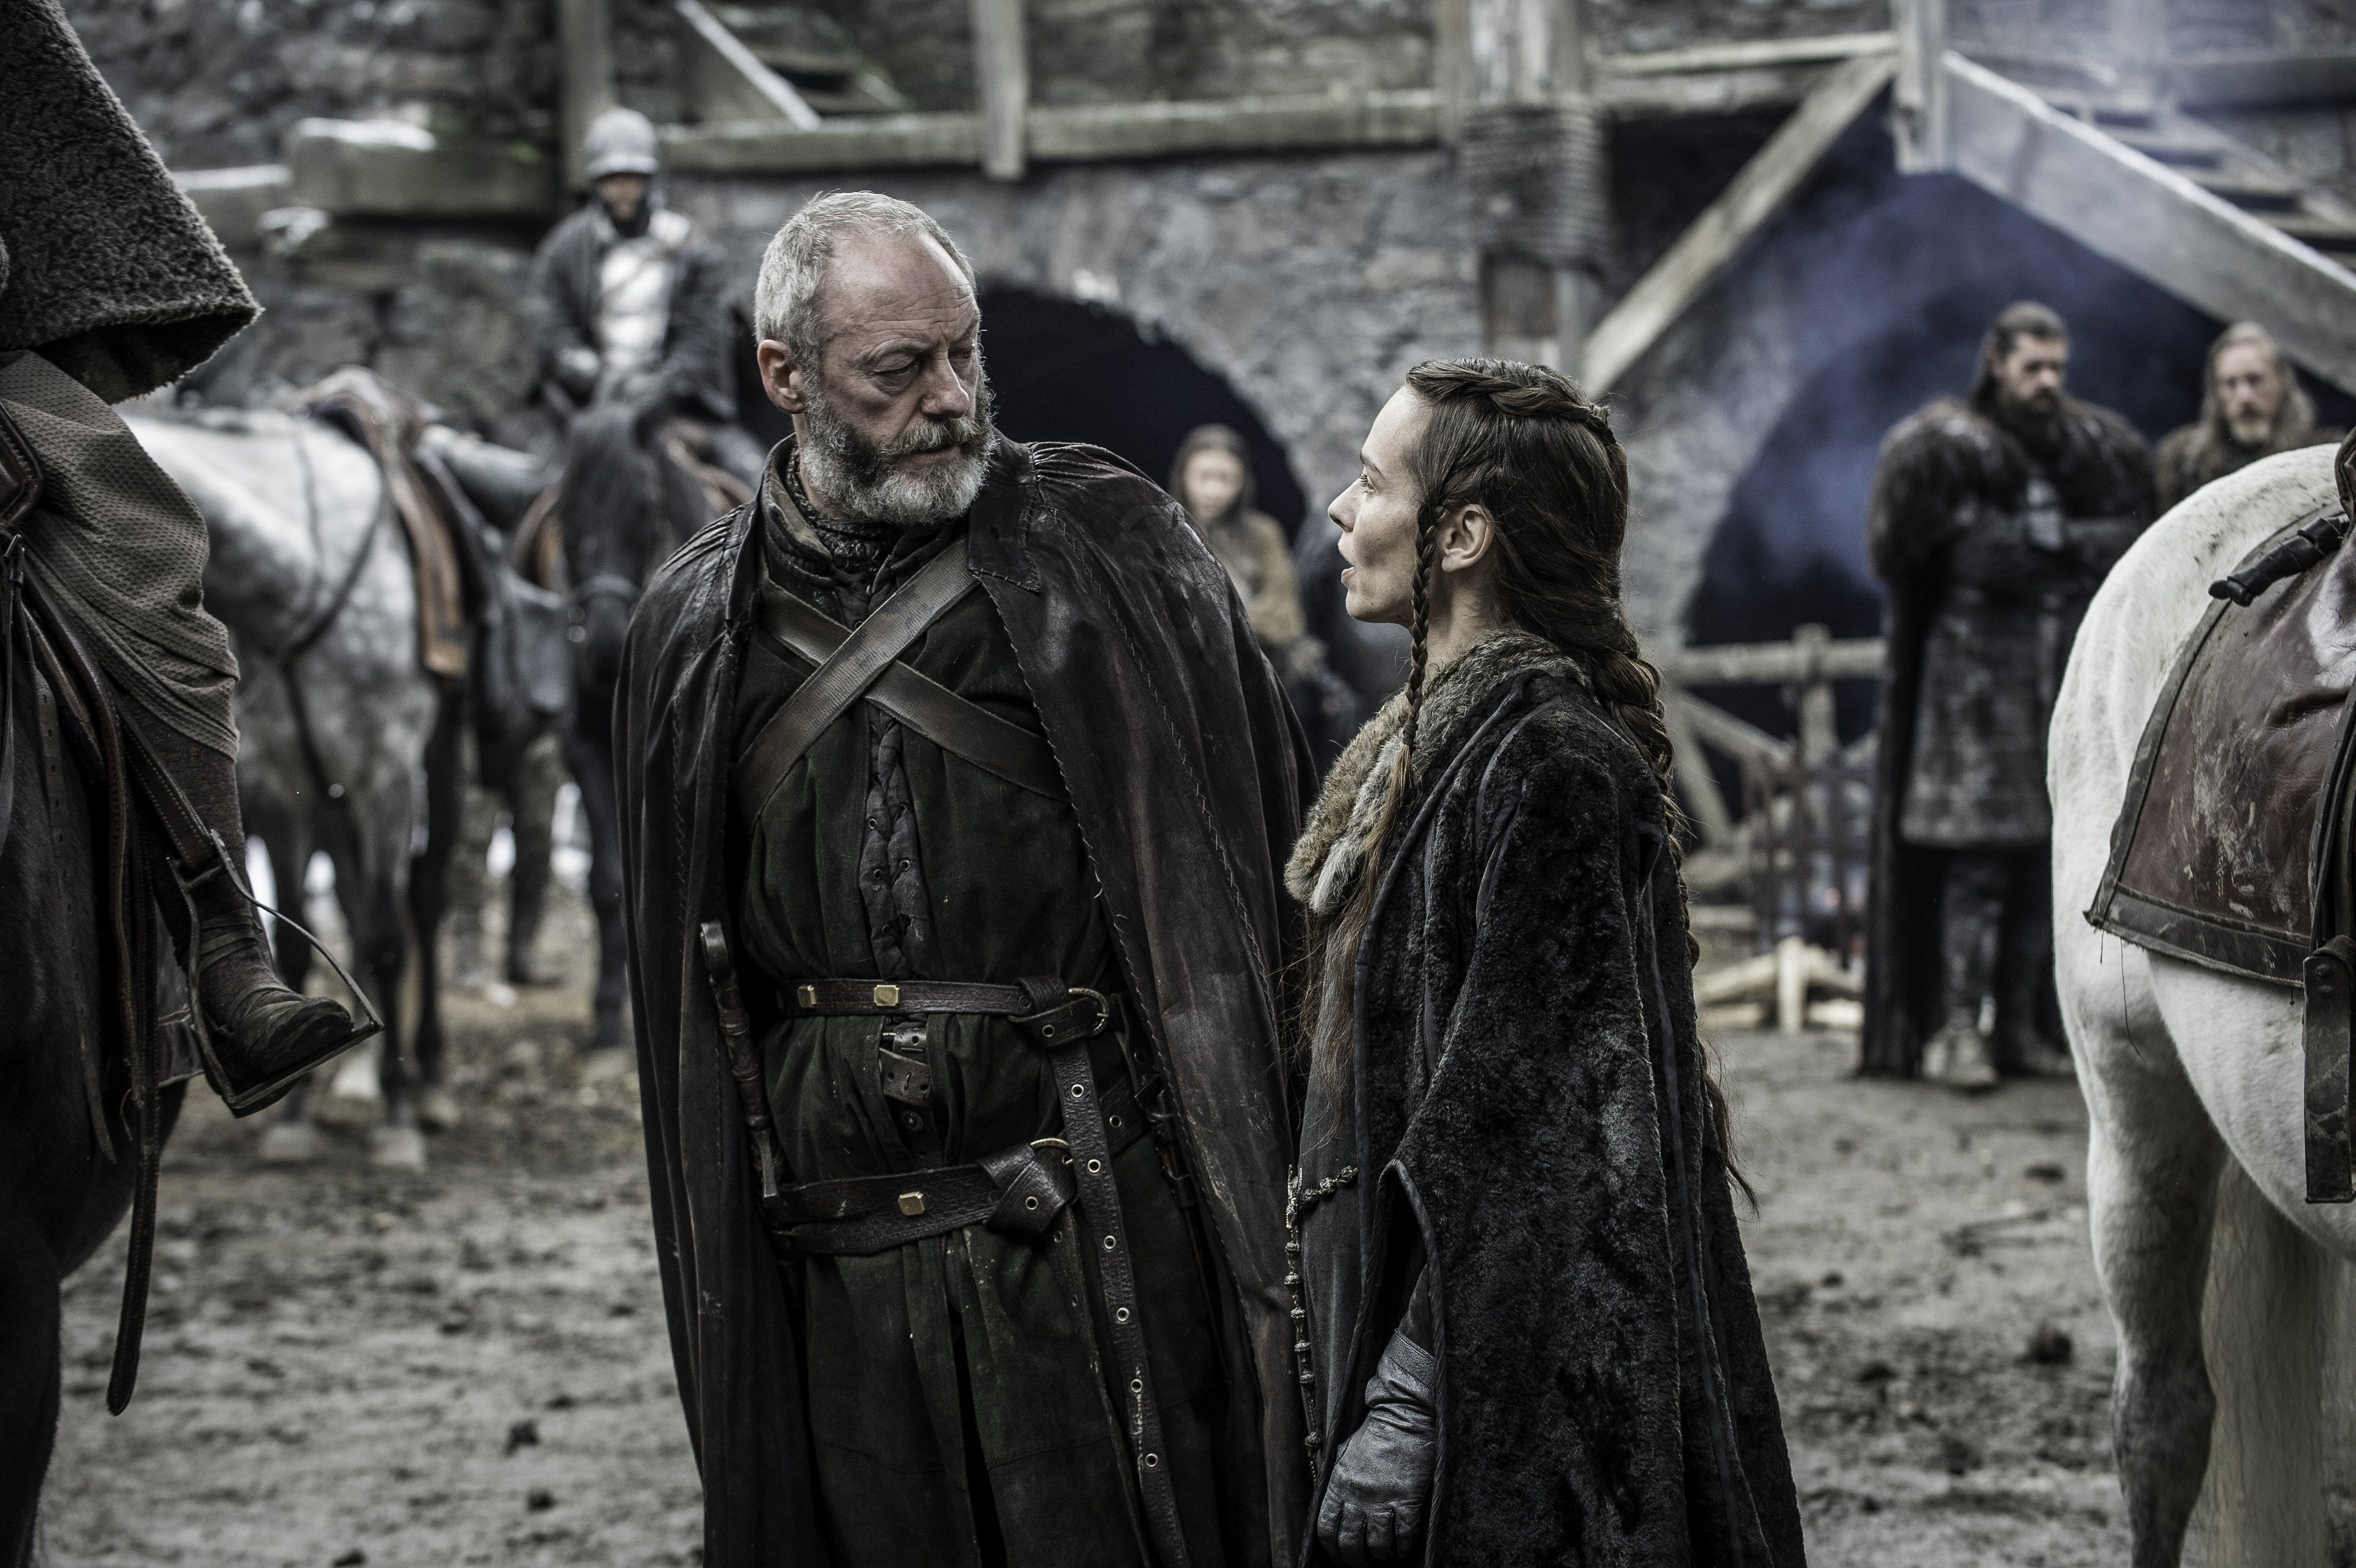 Davos Seaworth and Selyse Baratheon, Game of Thrones